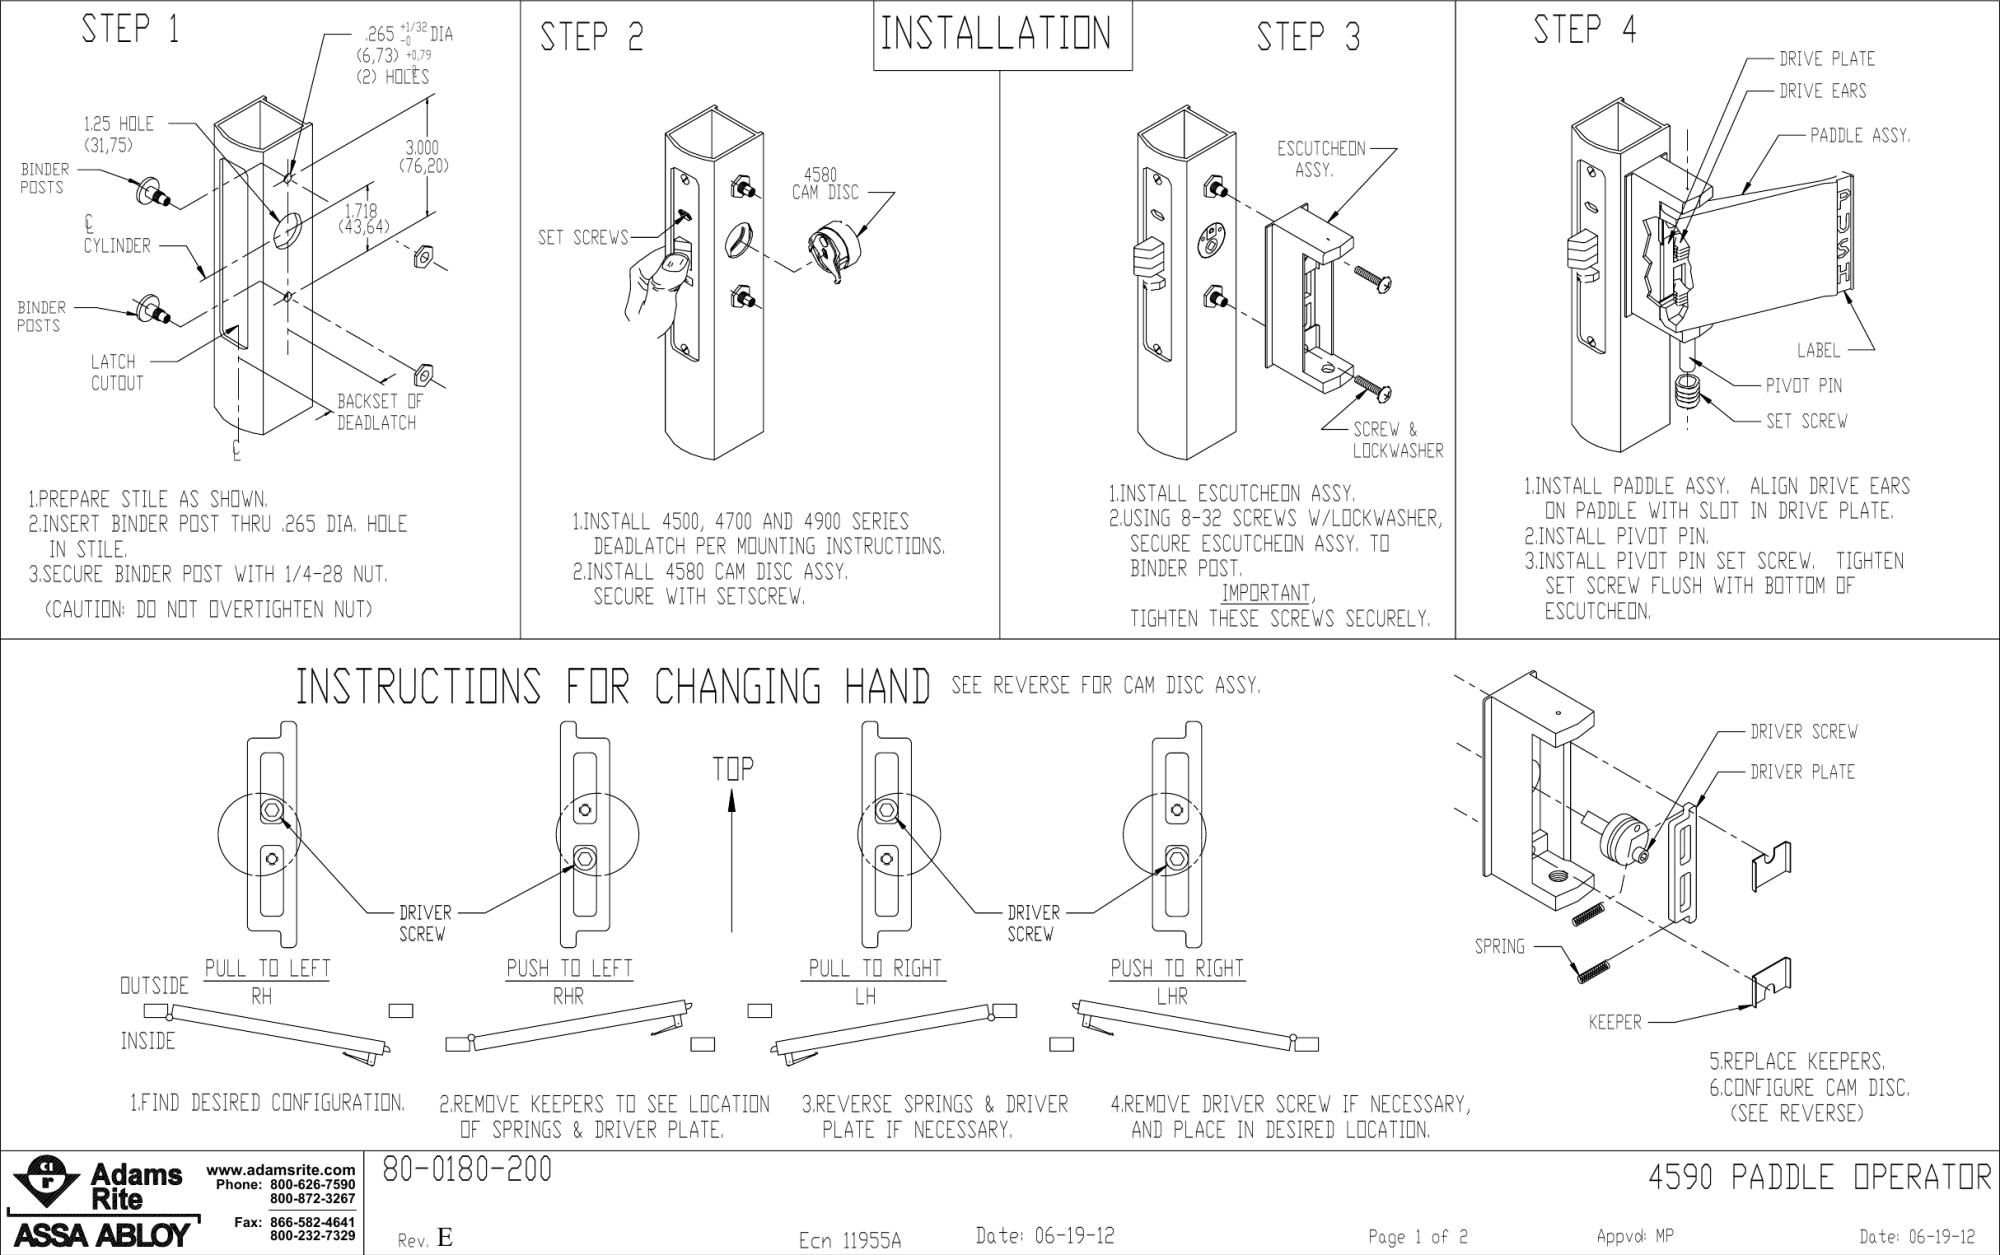 hight resolution of adams rite 80 0180 200 e 4590 4591 deadlatch paddles installation instructions 4590 200 e